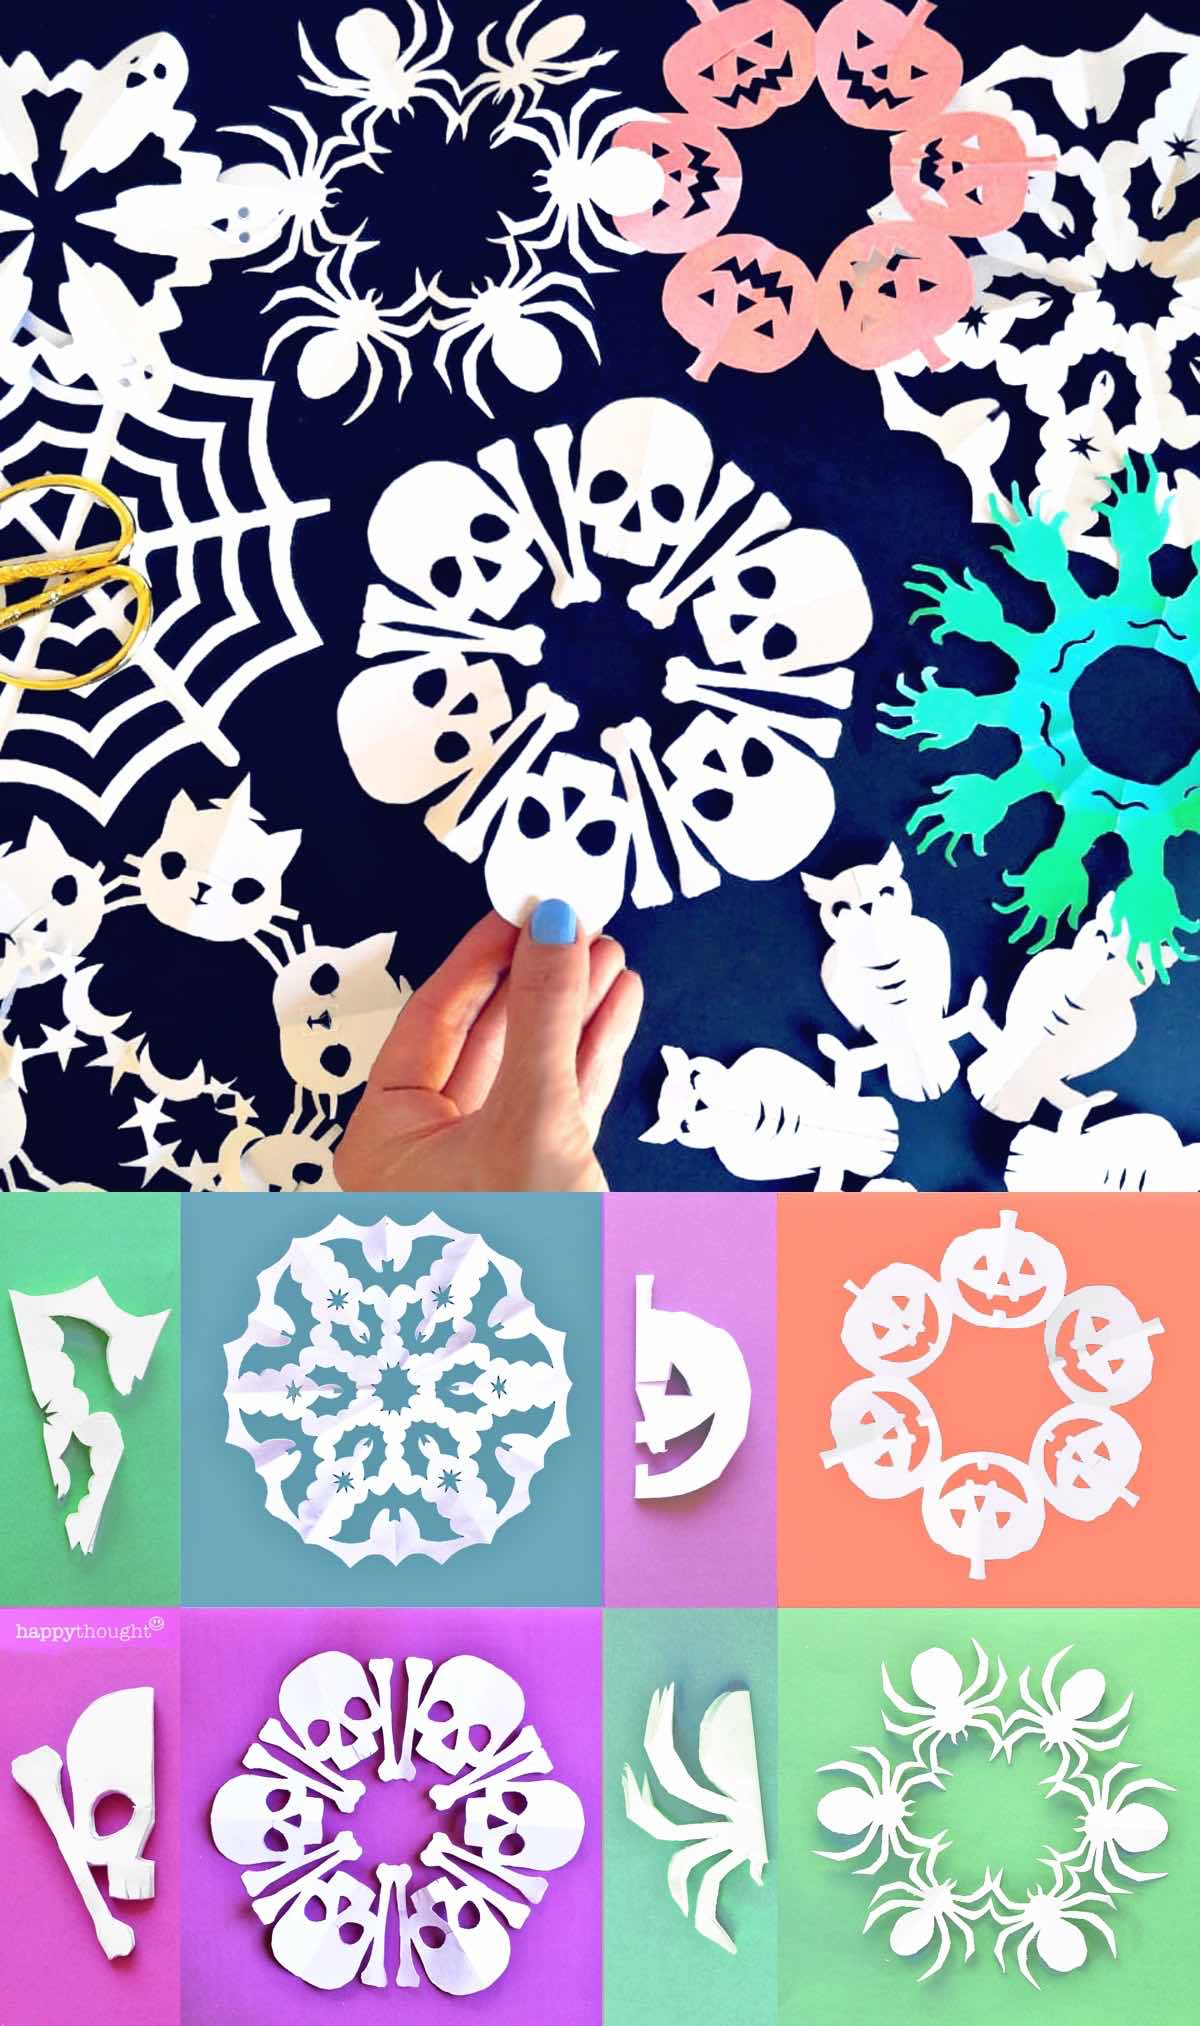 How to make halloween snowflakes at home as decorations